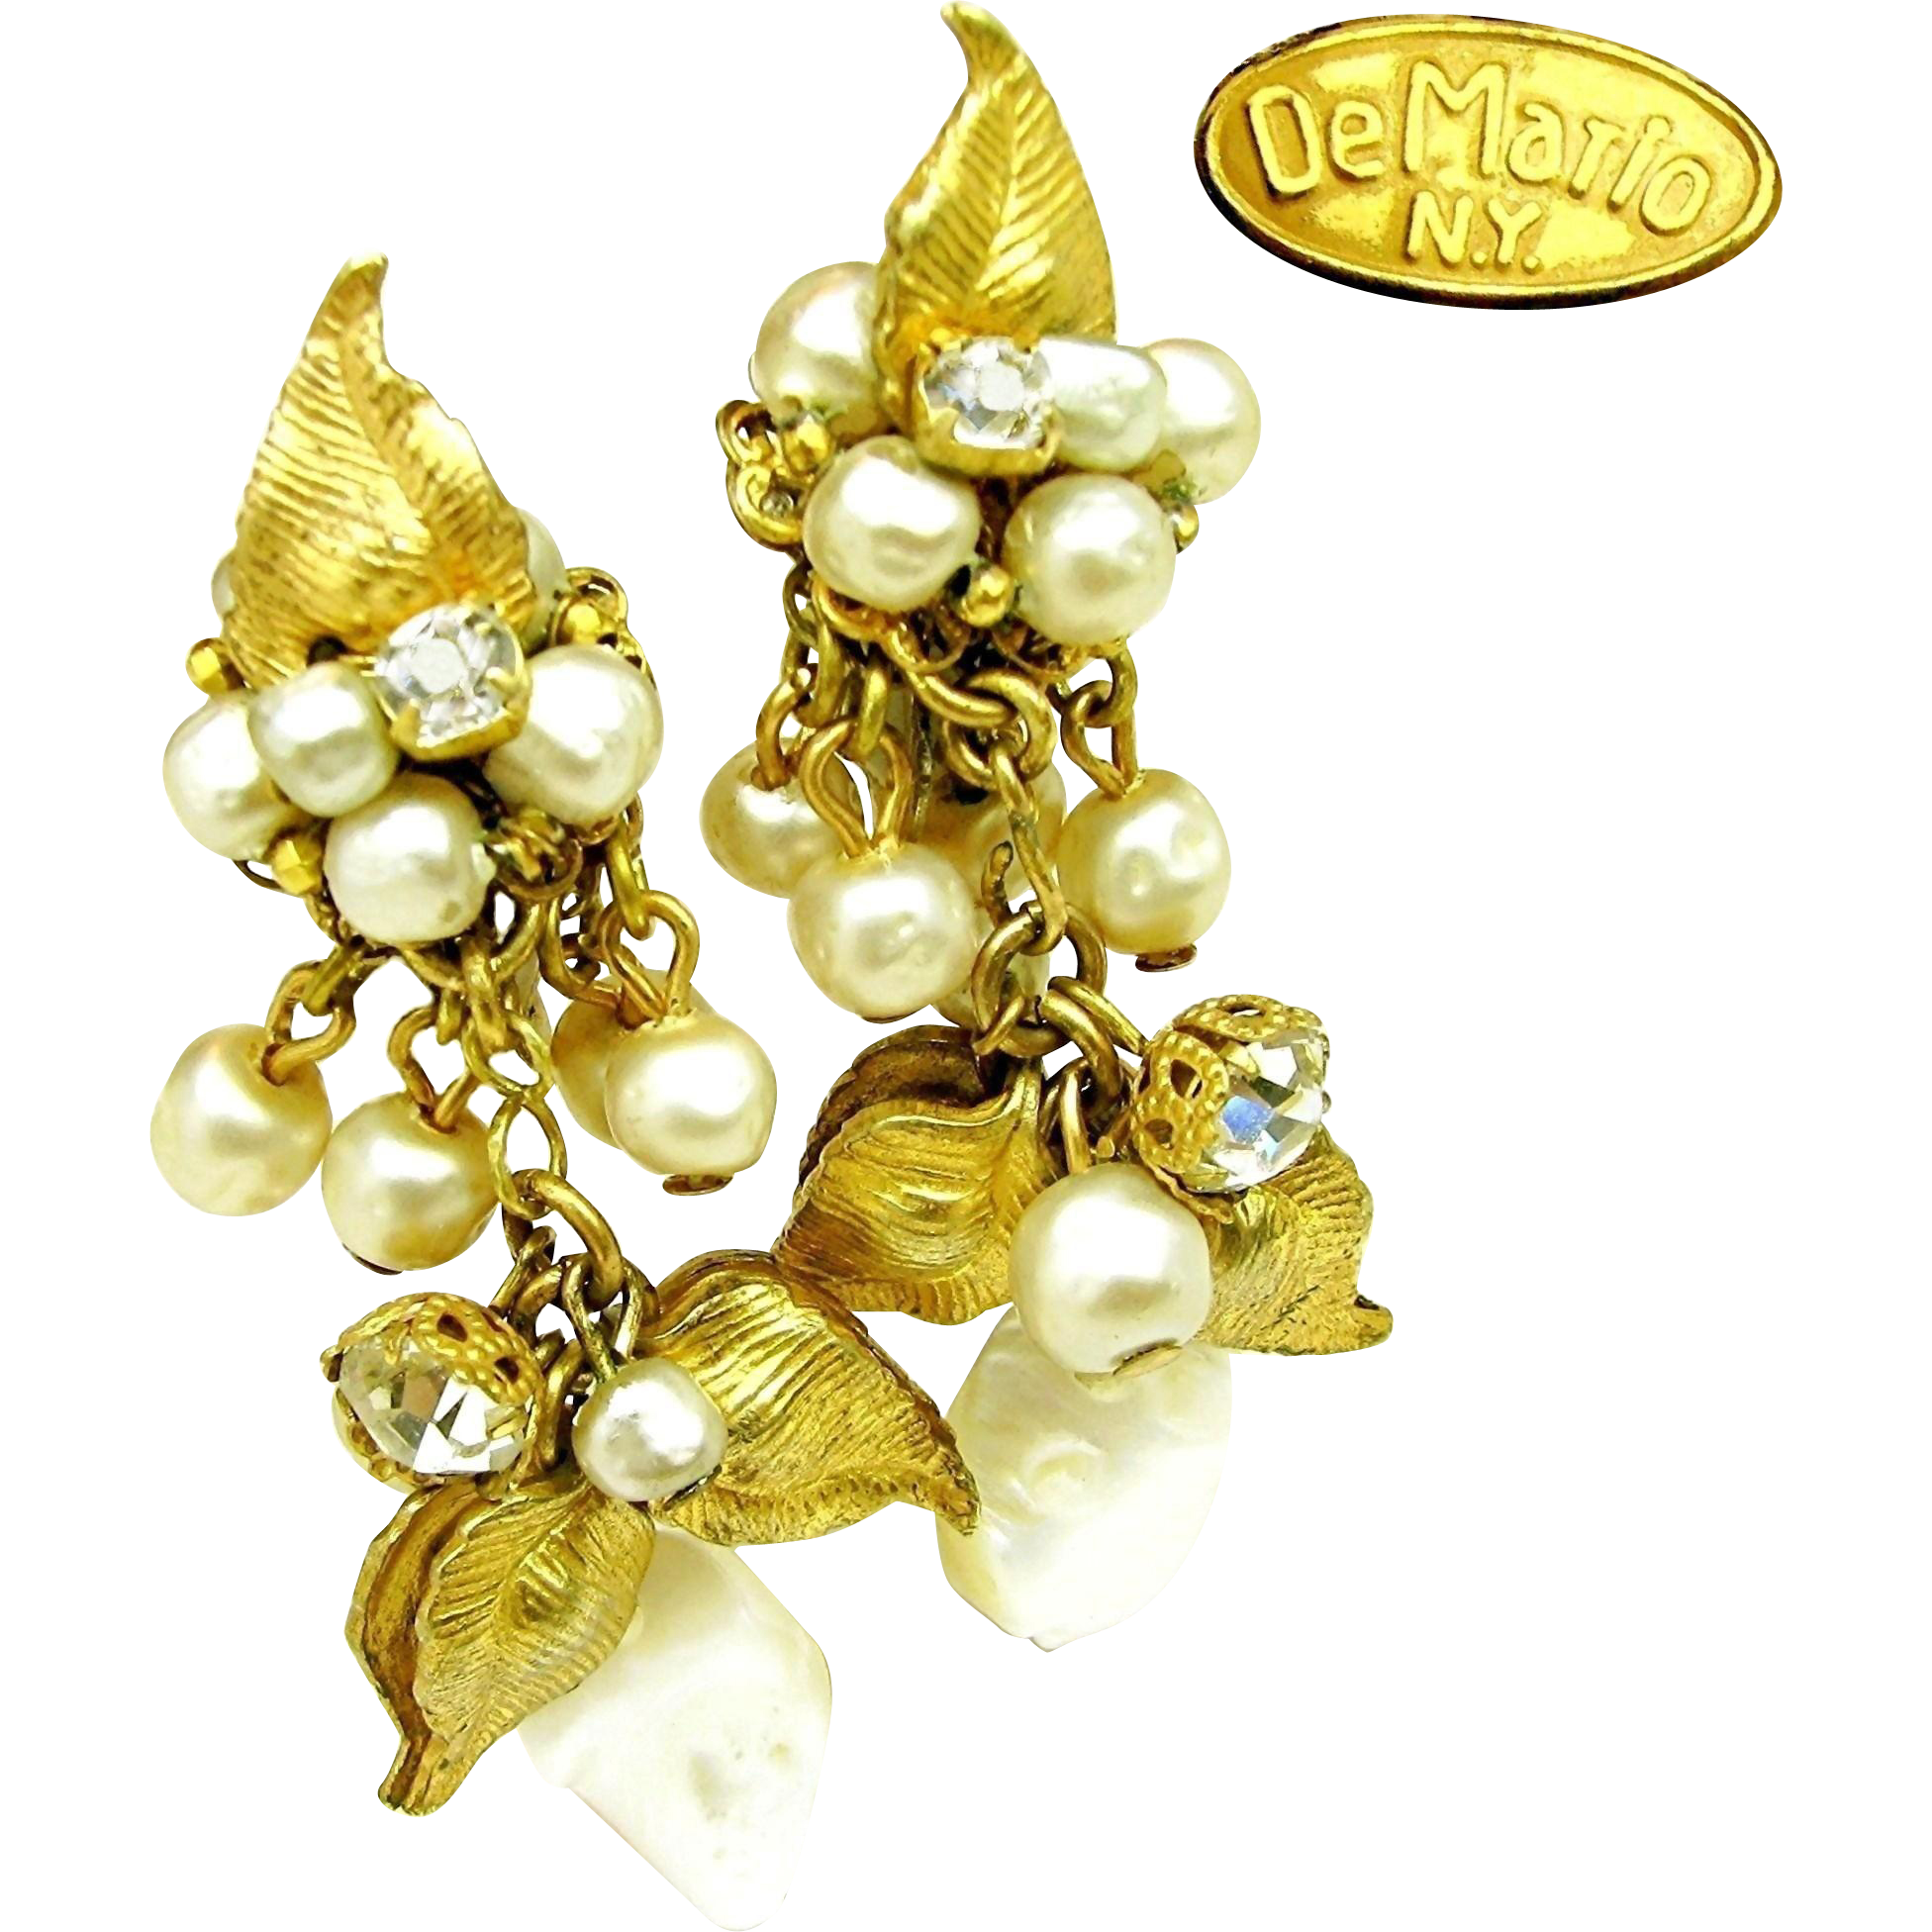 Vintage DeMARIO Drippy Floral Earrings w/ Glass Pearls 'n Rhinestones, M.O.P. too c.1950's